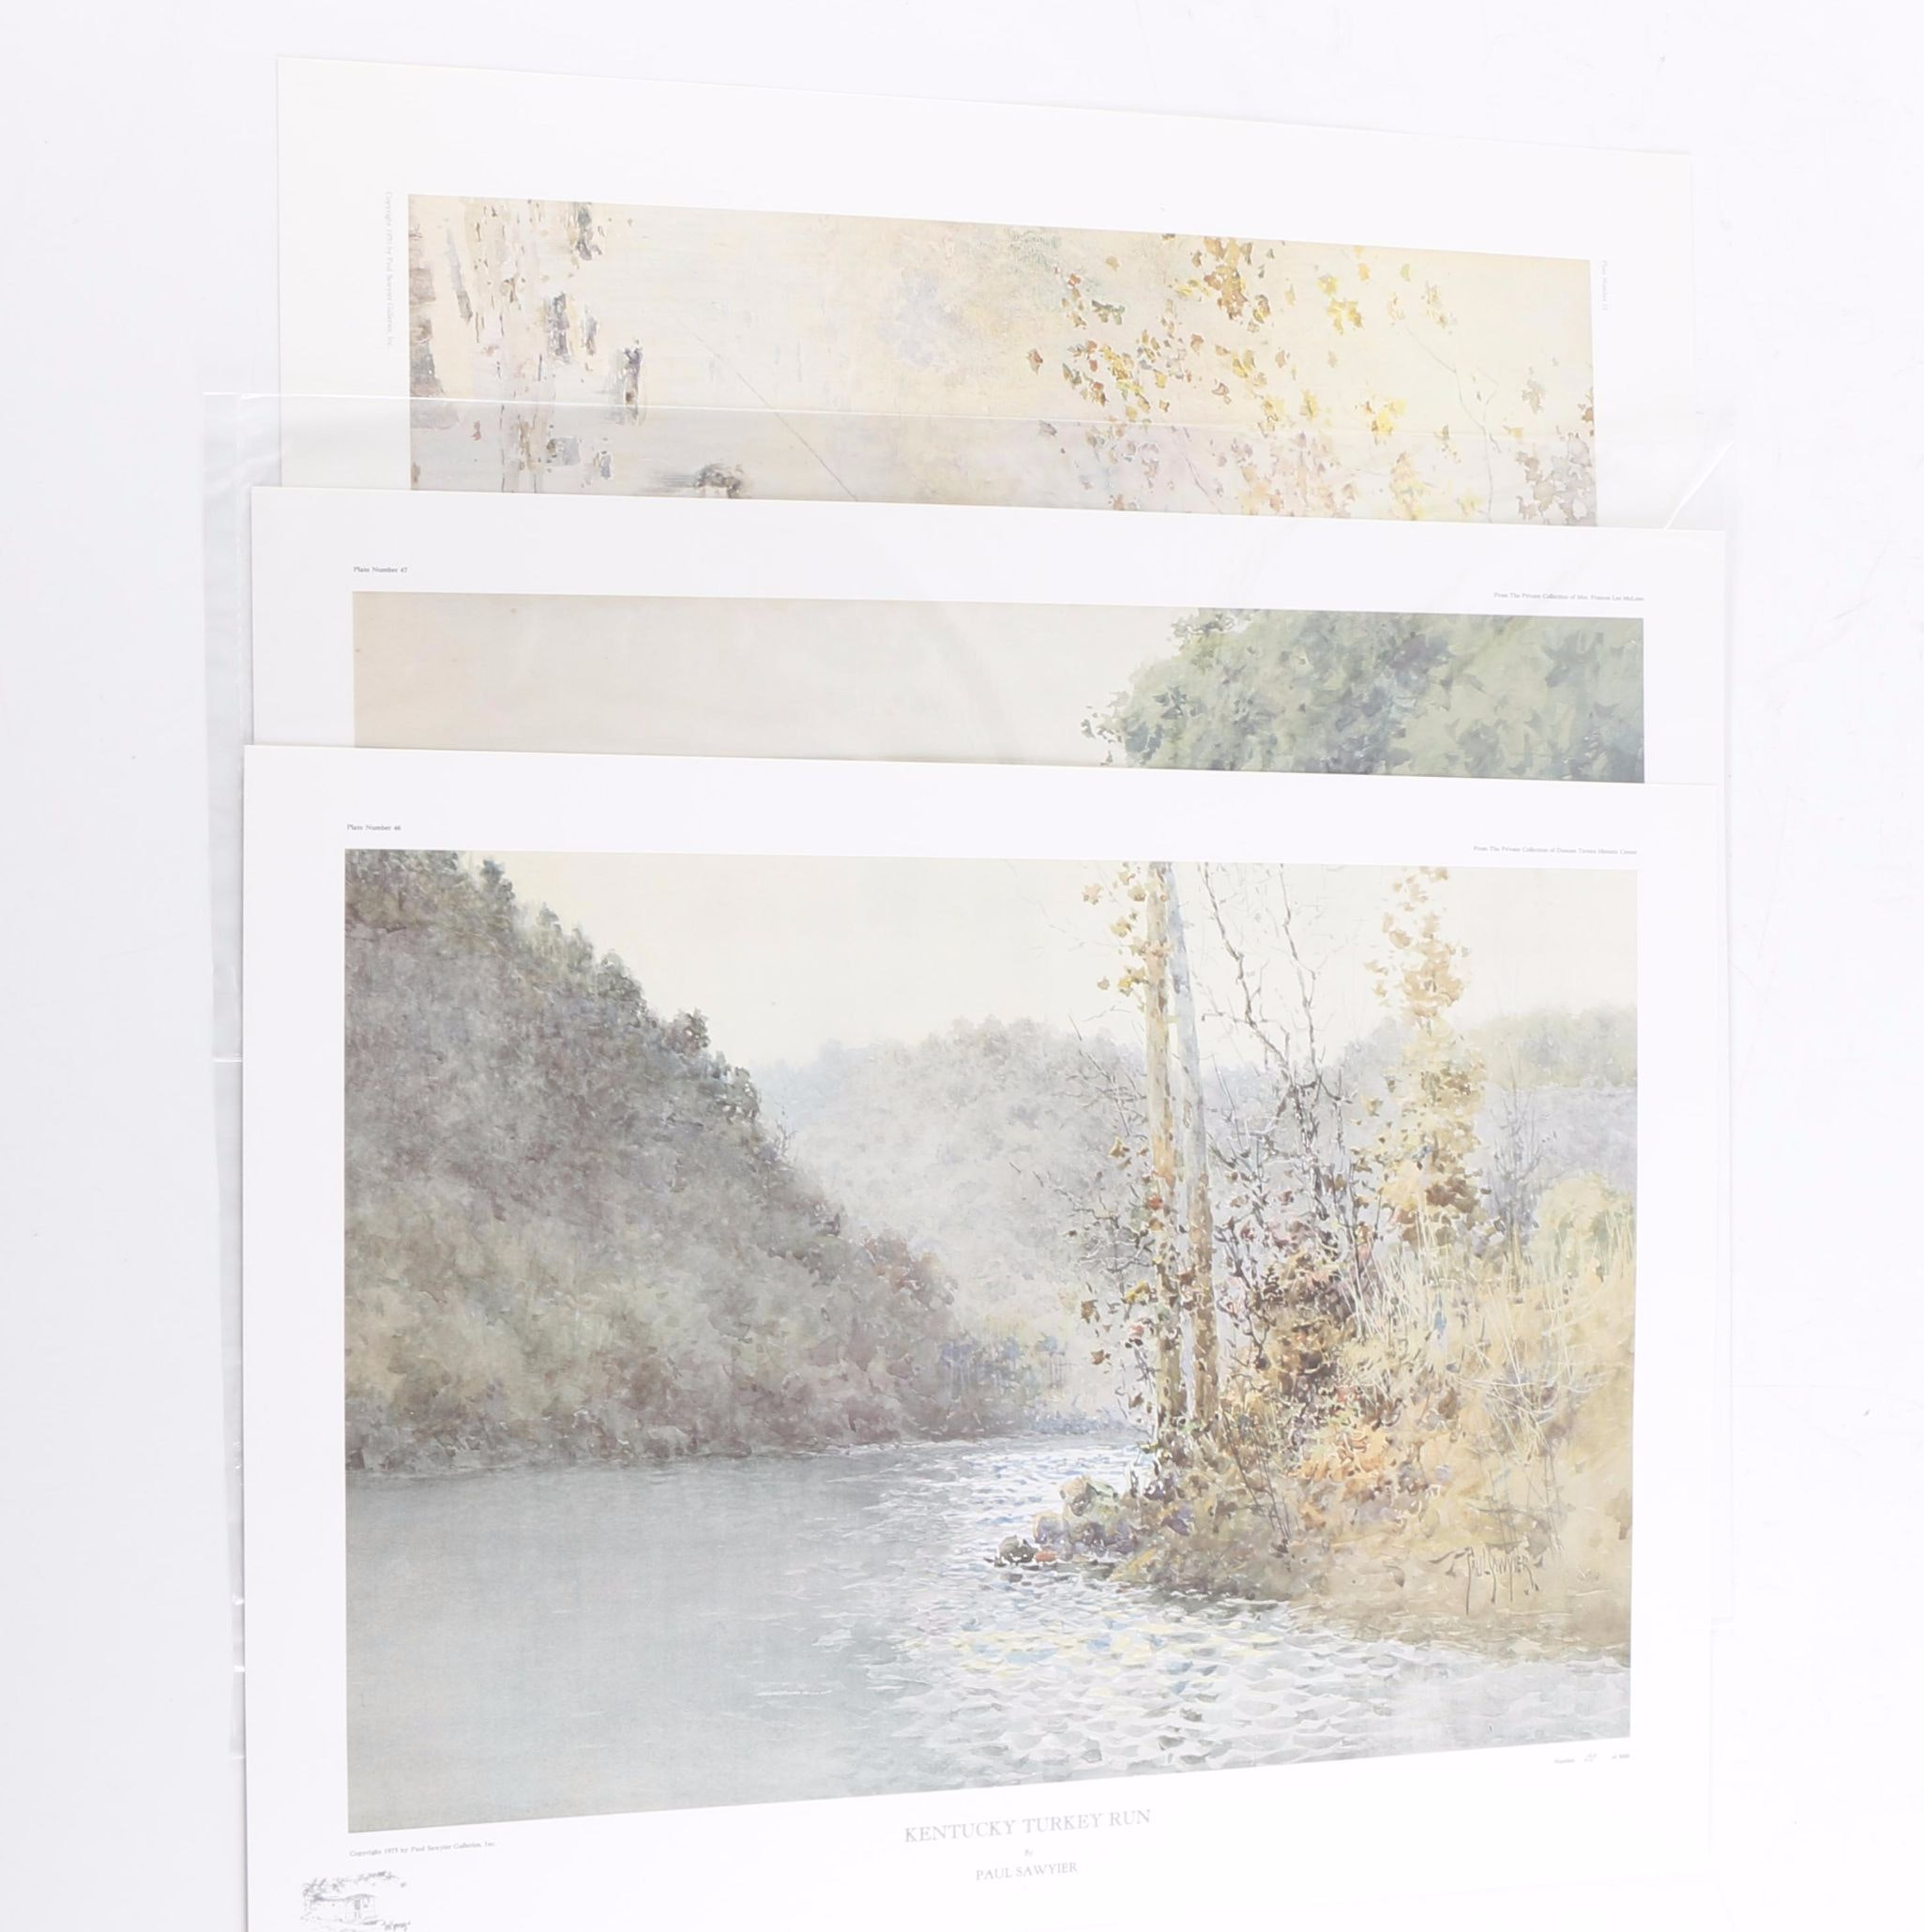 Collection of Paul Sawyier Limited Edition Offset Lithographs on Paper